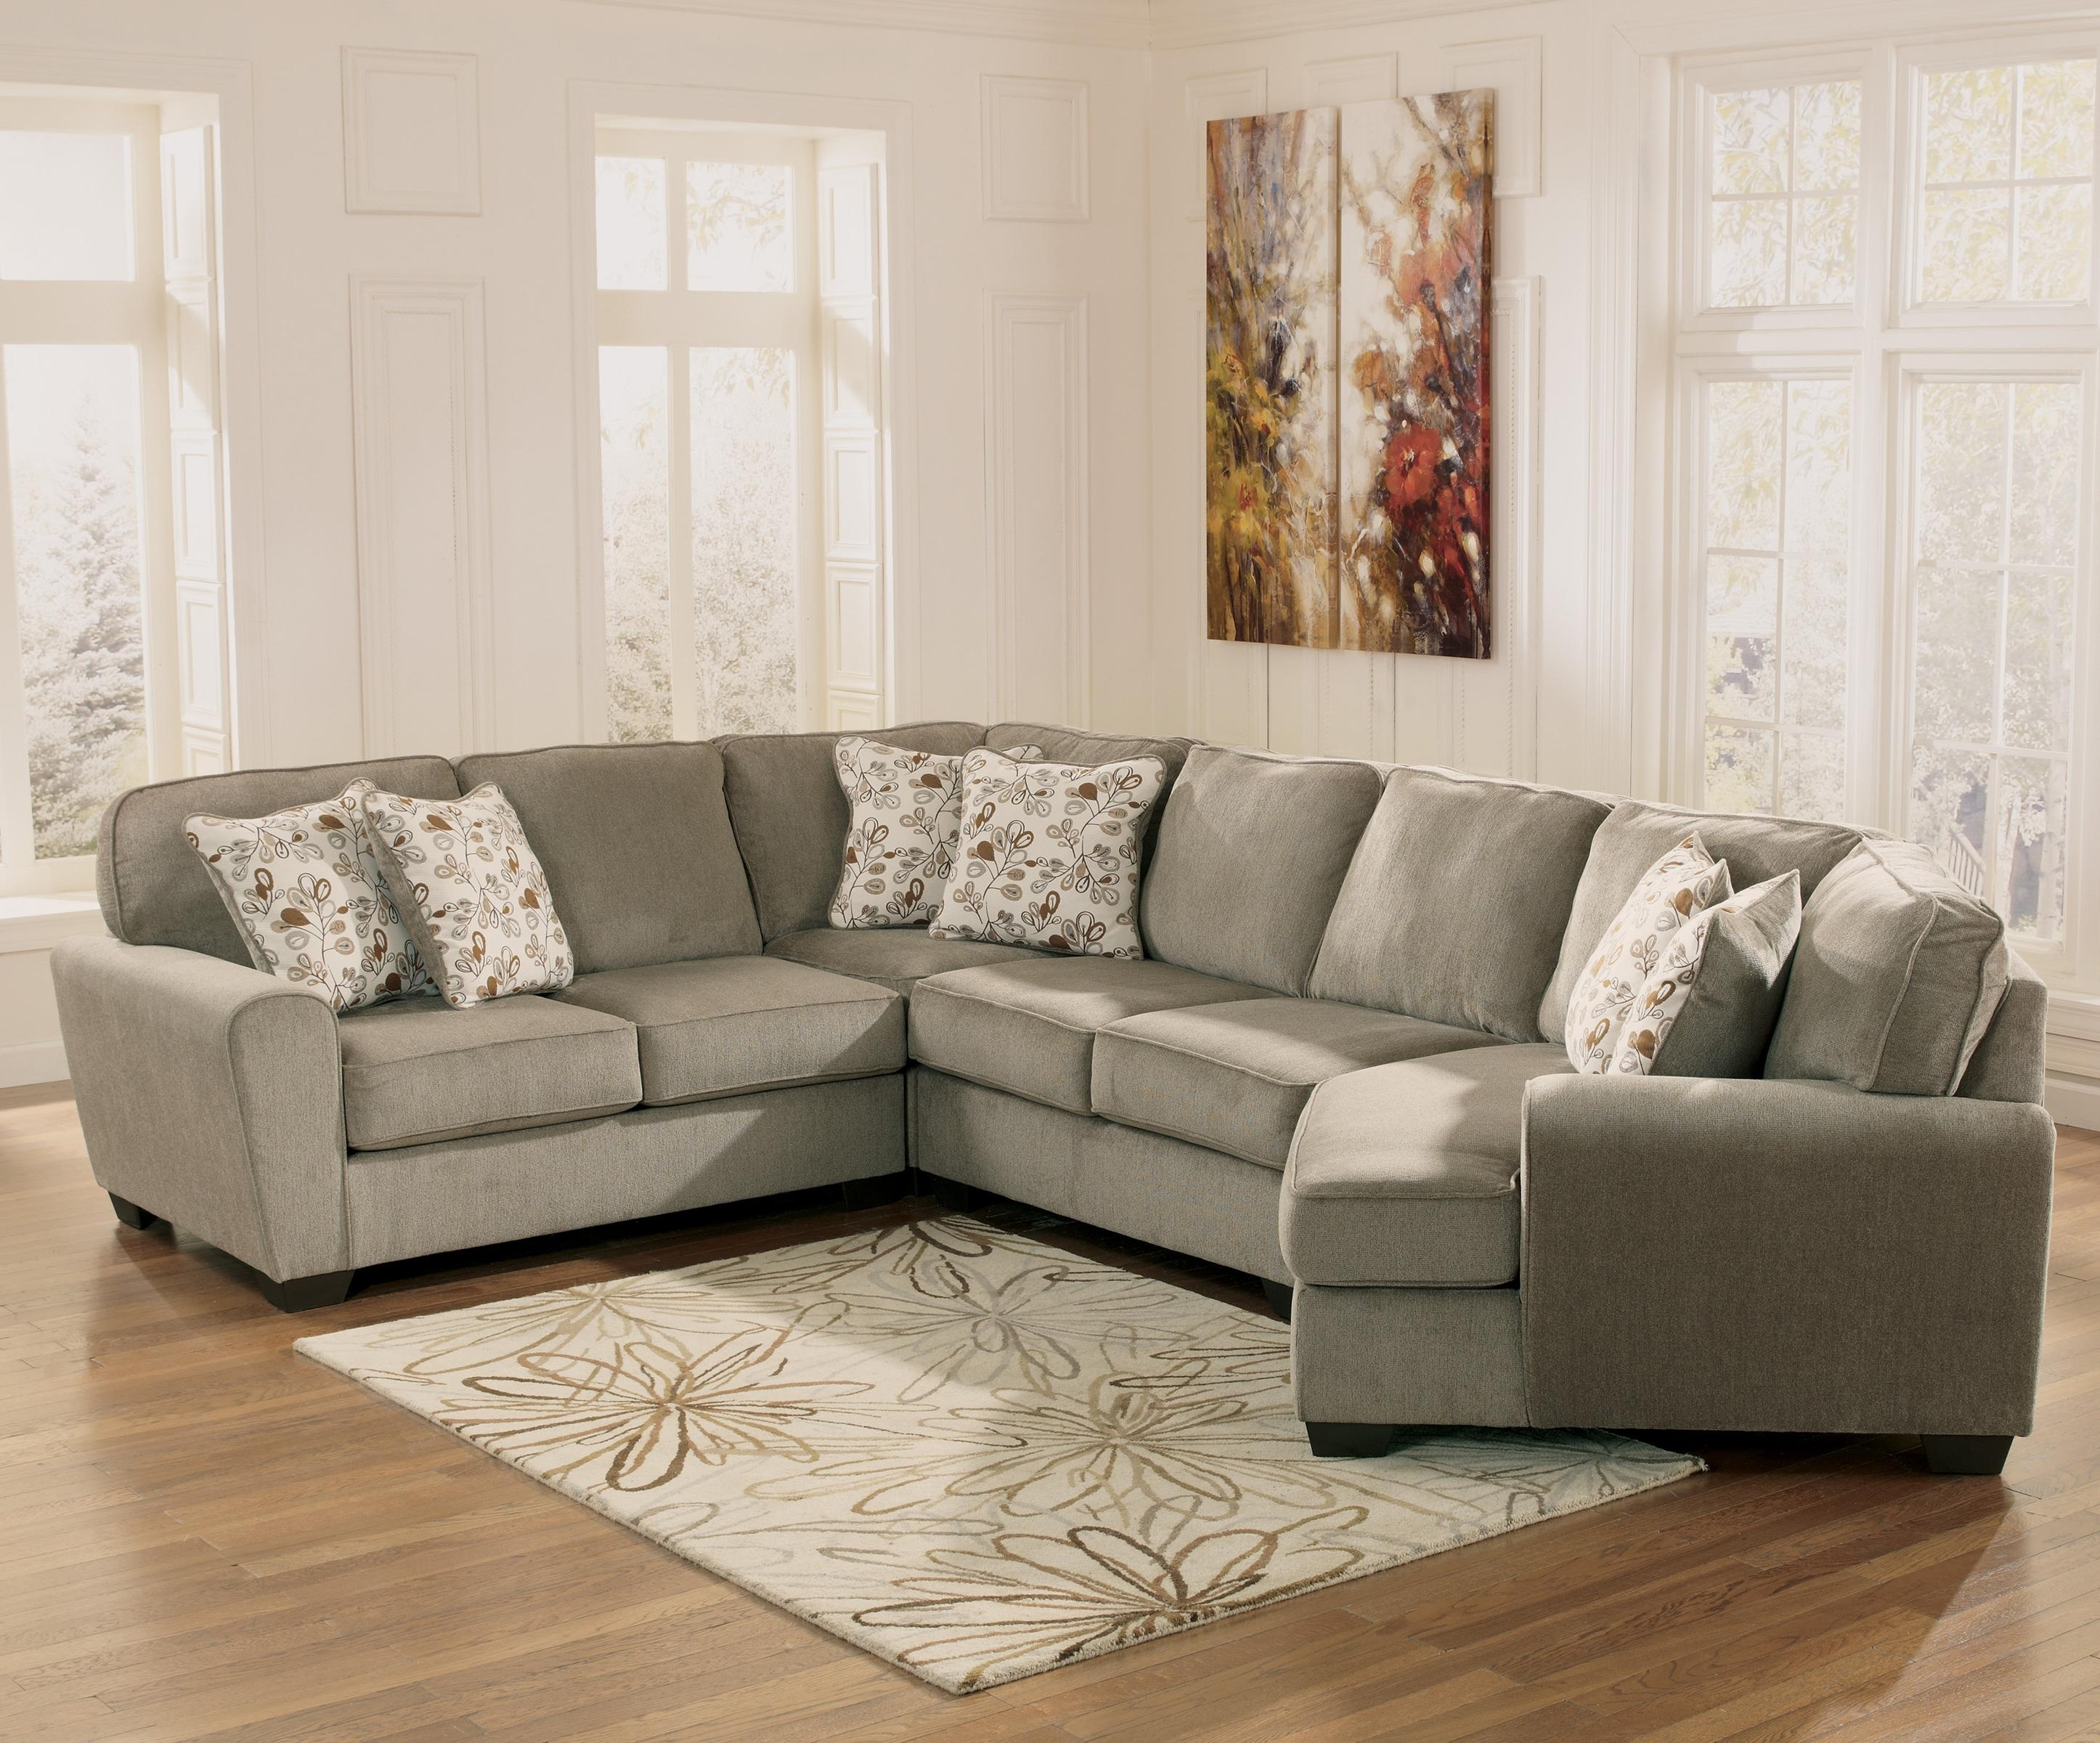 Ashley Furniture Patola Park – Patina 4 Piece Small Sectional With With Regard To Green Bay Wi Sectional Sofas (View 8 of 10)